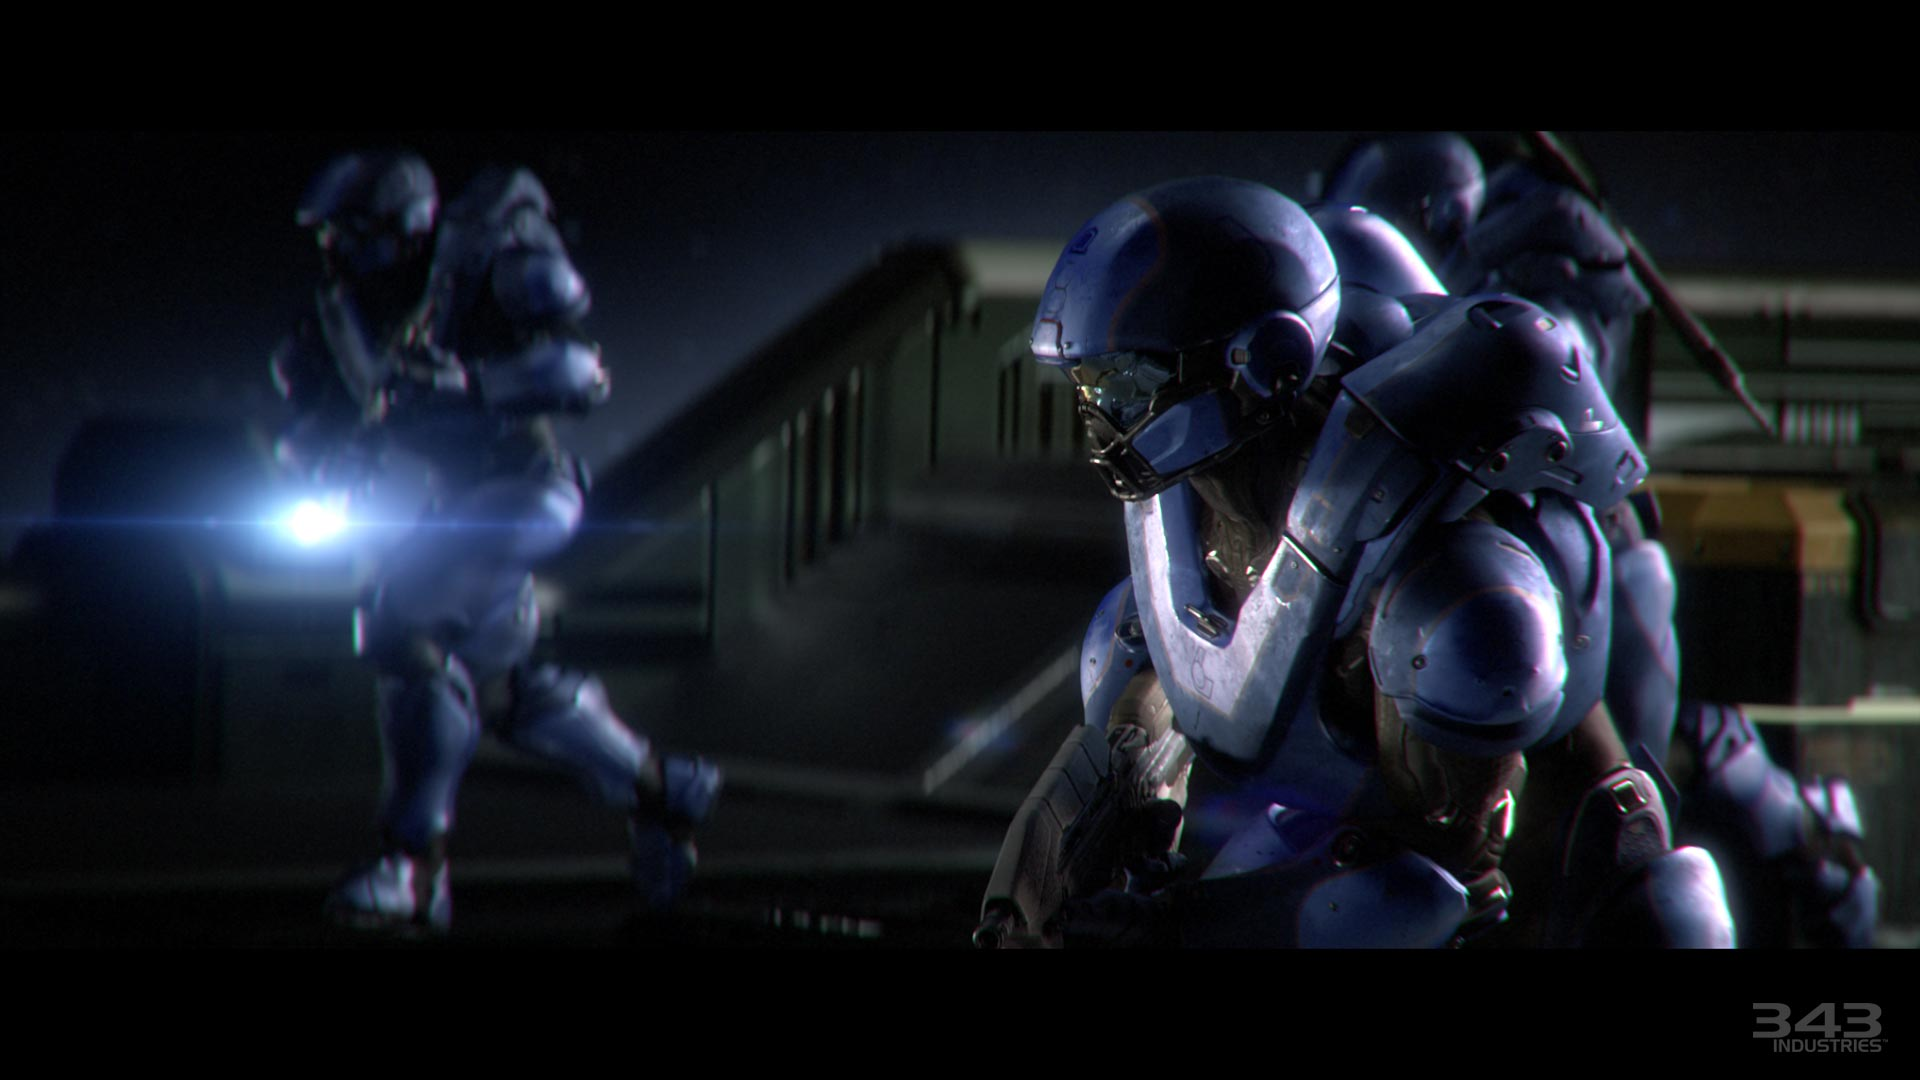 Halo 5 Guardians Video Game 15 Desktop Wallpaper 1920x1080